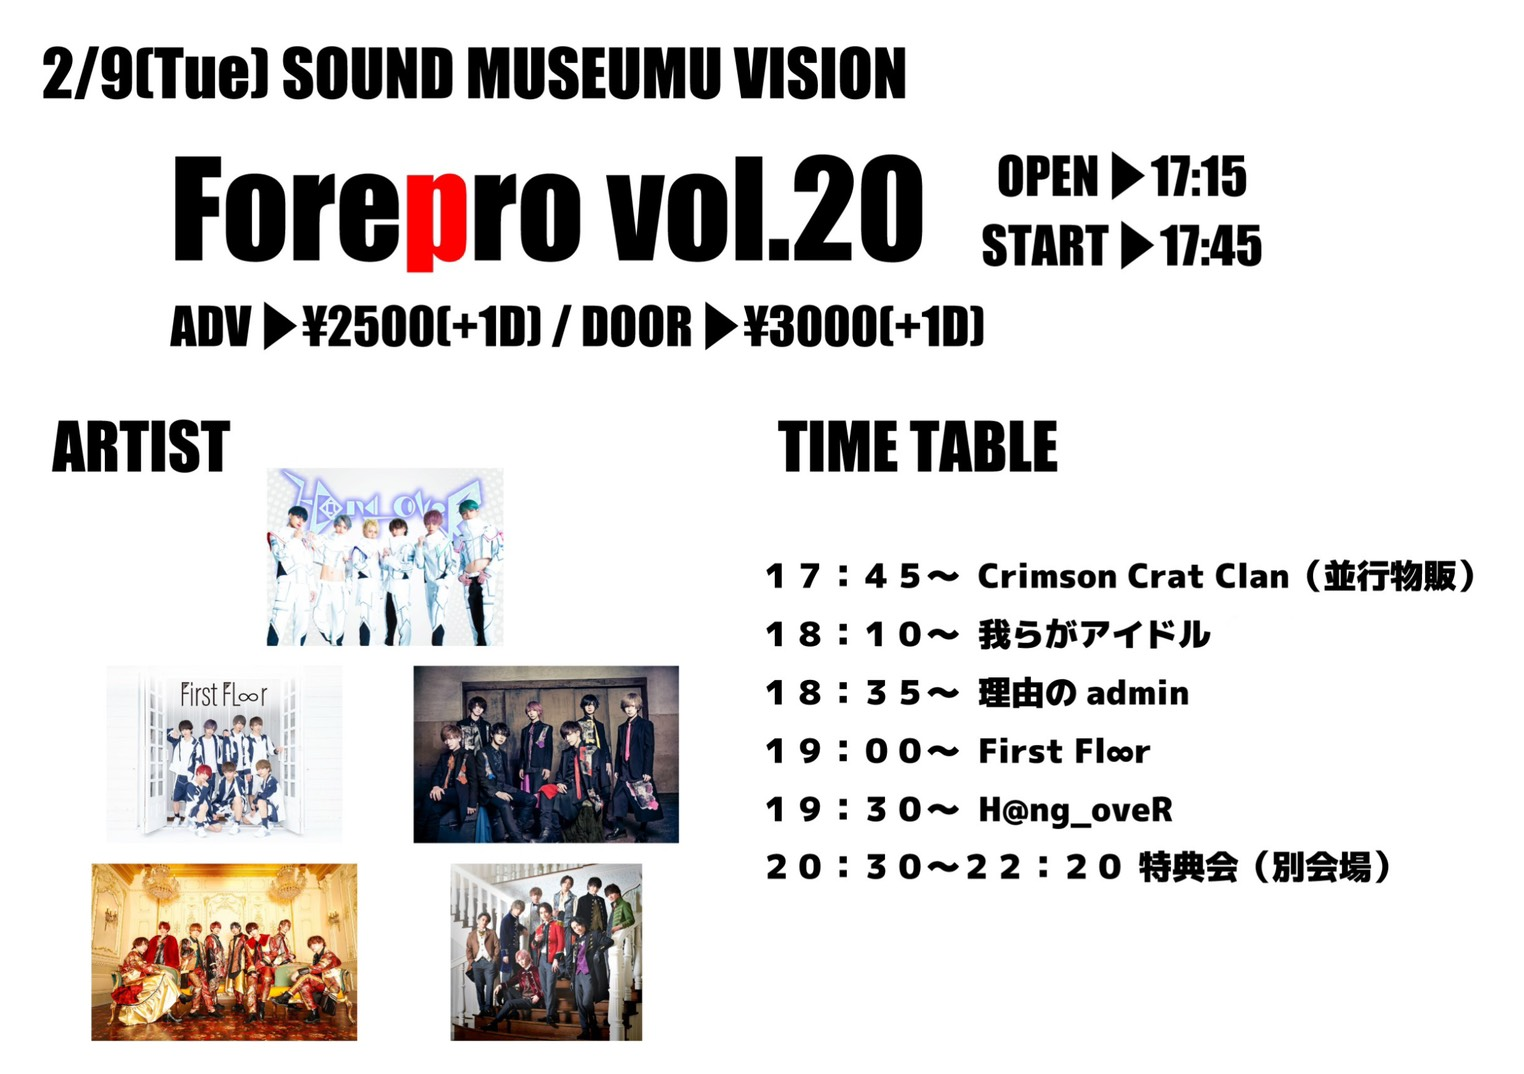 Forepro vol.20